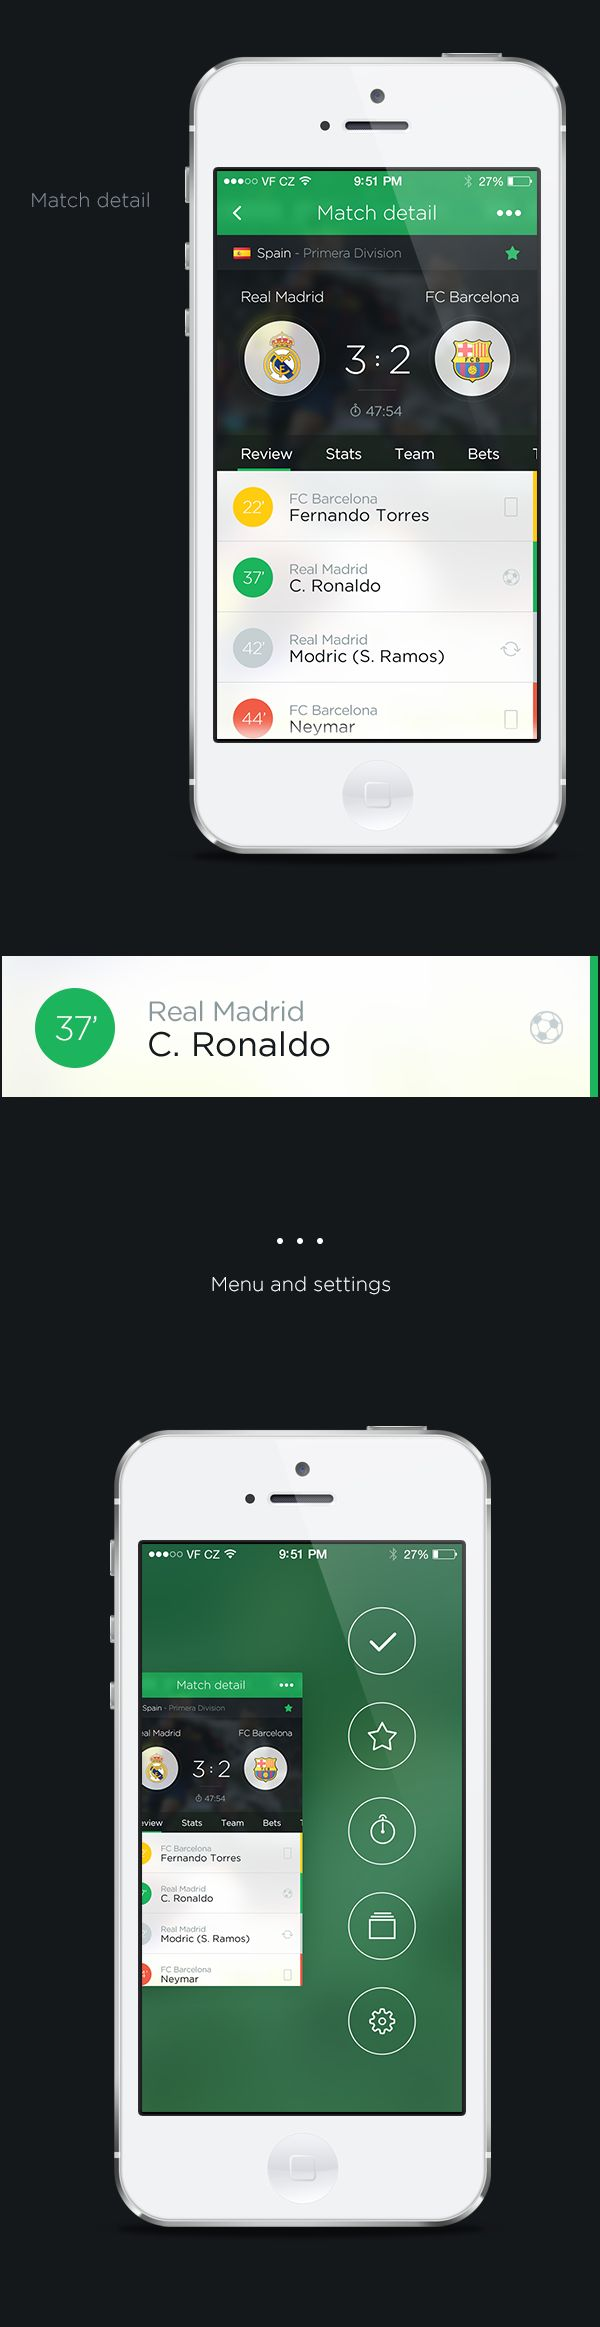 Livesport app concept by Pierre Borodin, via Behance